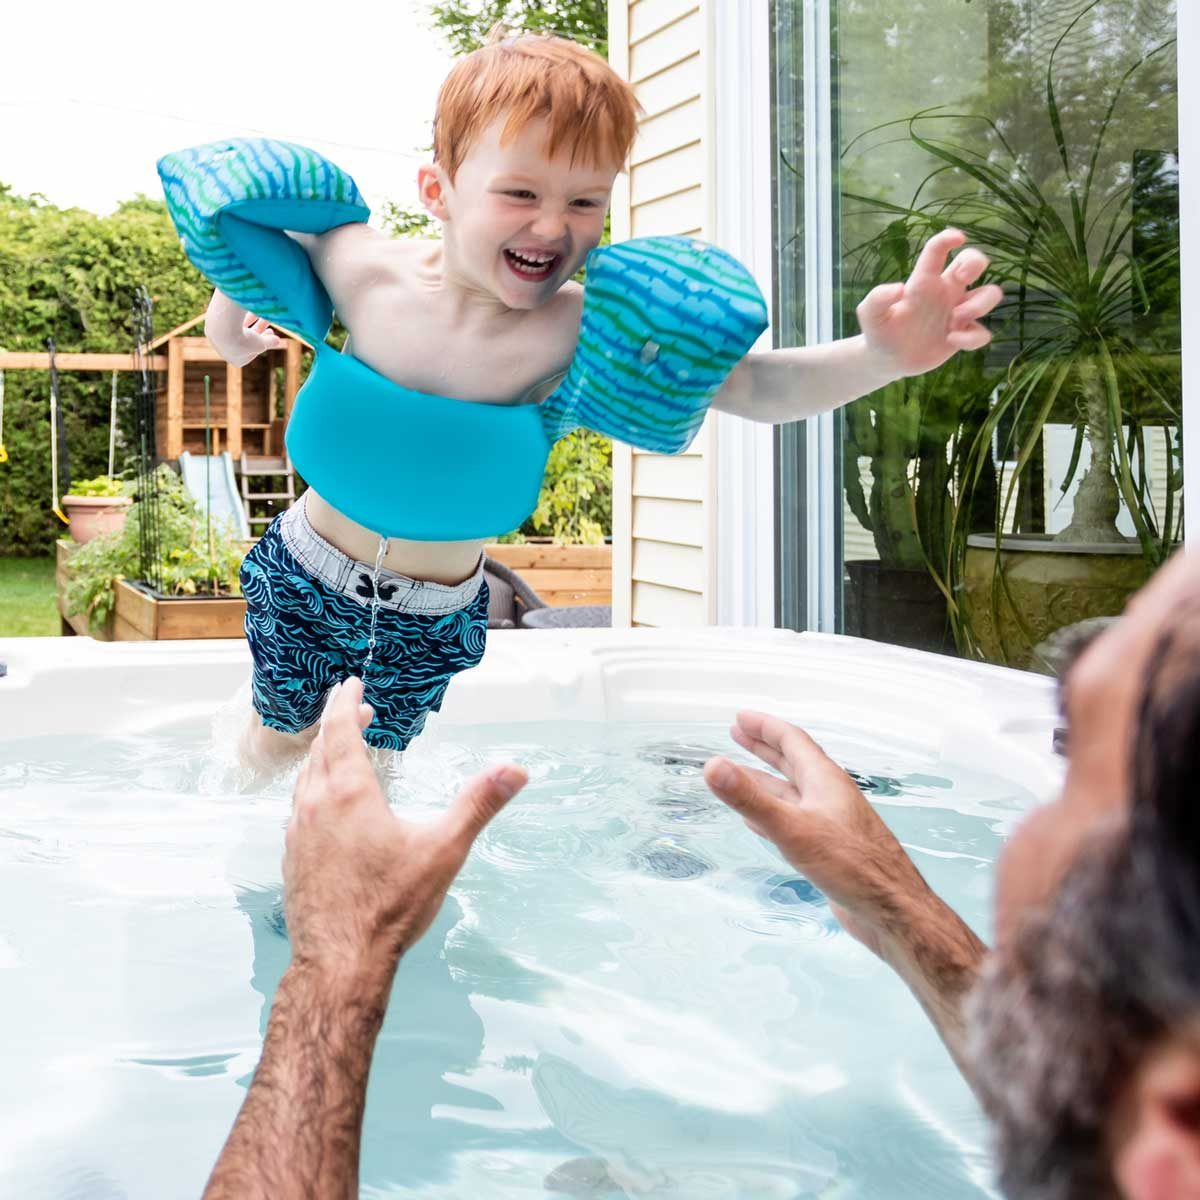 Child jumping into a hot tub